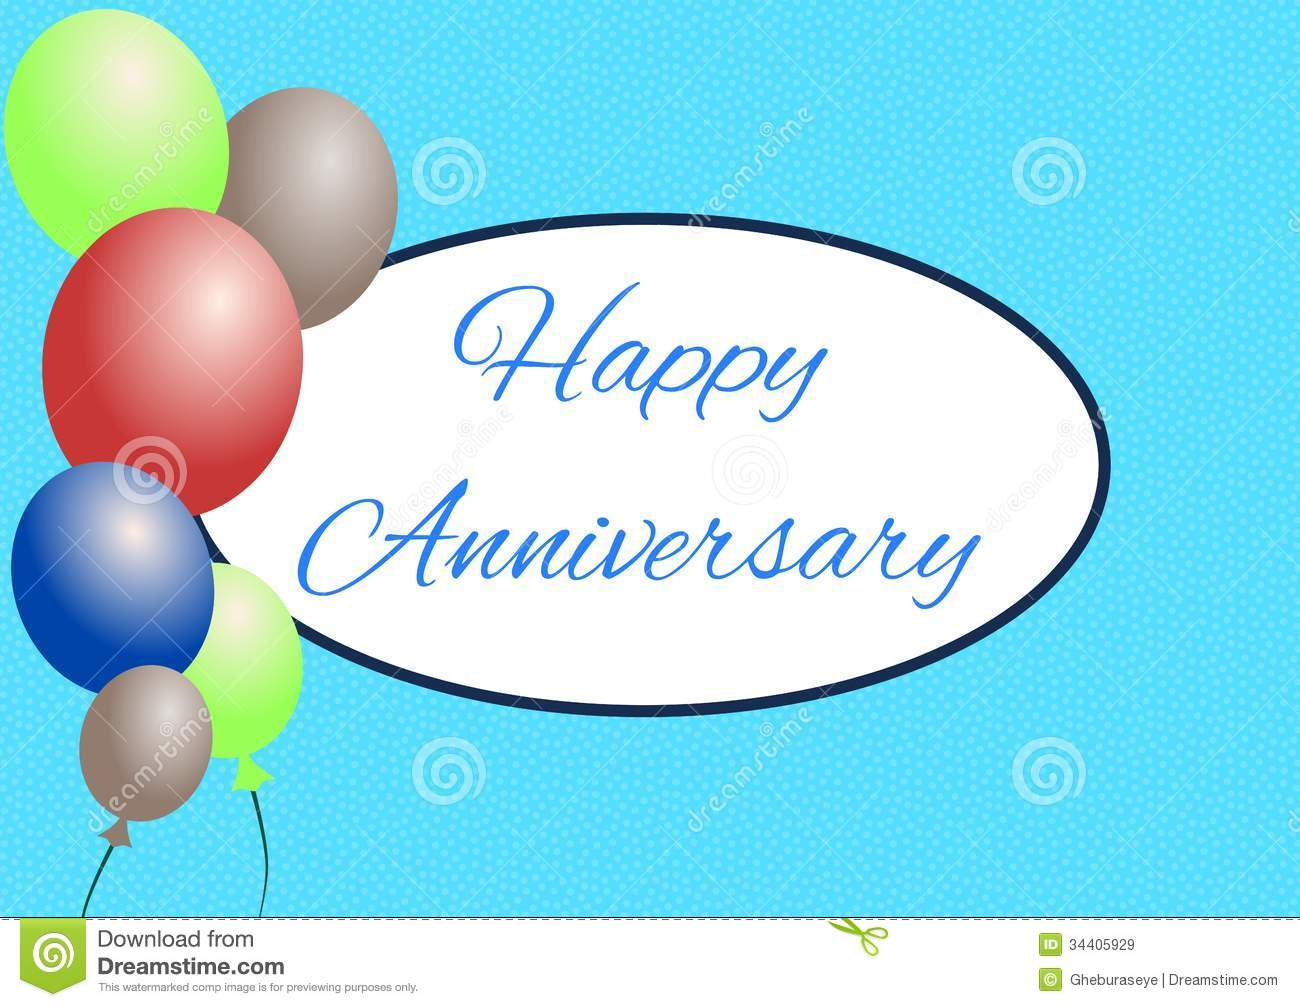 Happy anniversay stock illustration. Illustration of ...